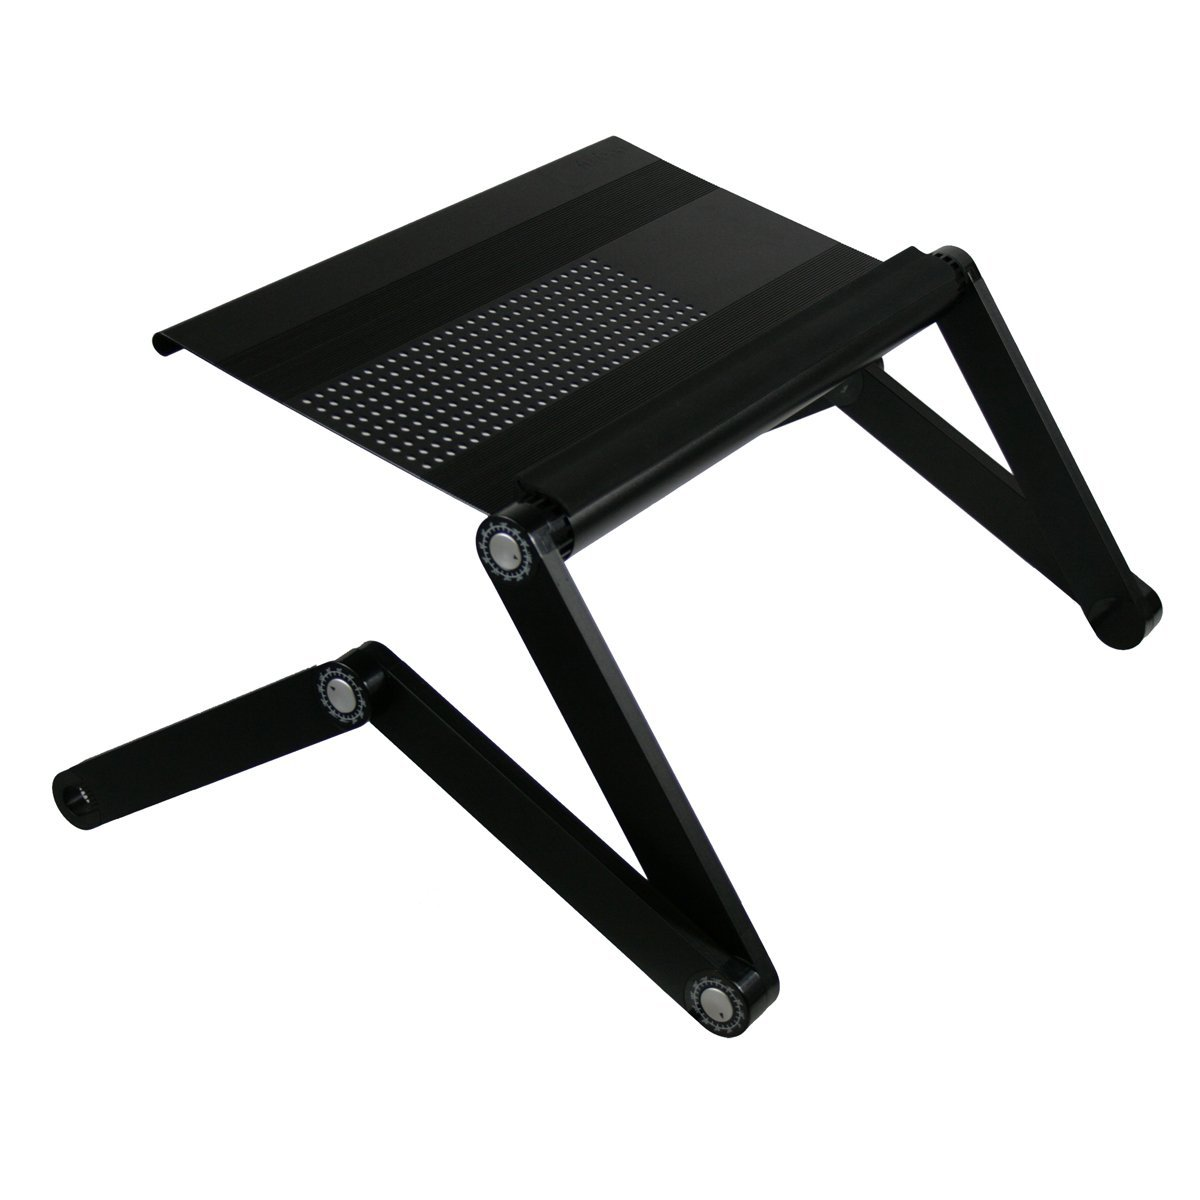 Marvelous Lap Desk Laptop Ebook Reading Table Foldable Adjustable Black Bed Table Tray Home Interior And Landscaping Ologienasavecom